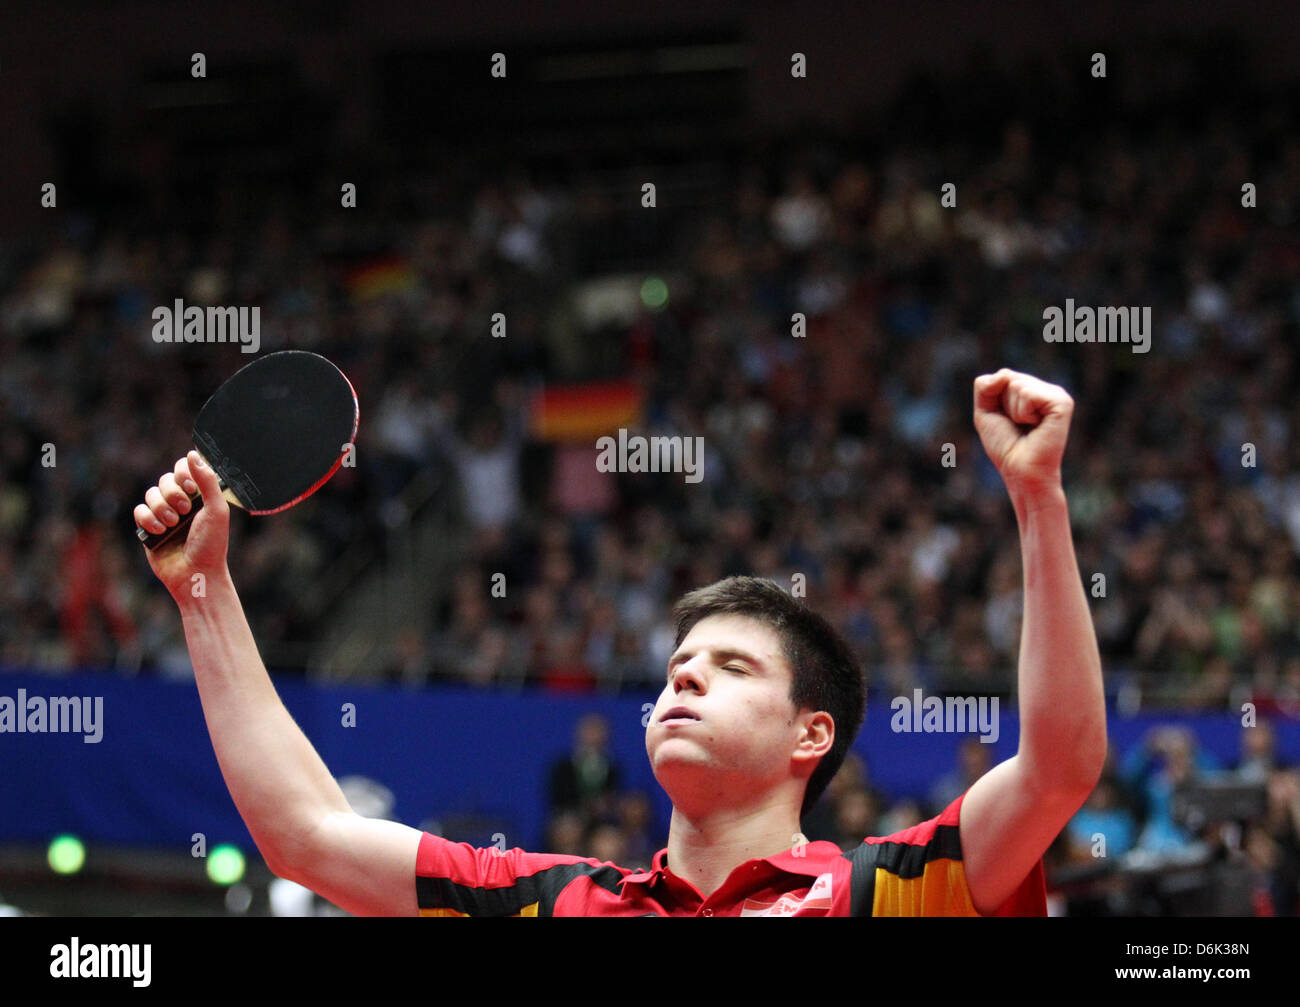 Germany's Dimitrij Ovtcharov celebrates his victory in the men's semifinal match against Mizutani of Japan - Stock Image